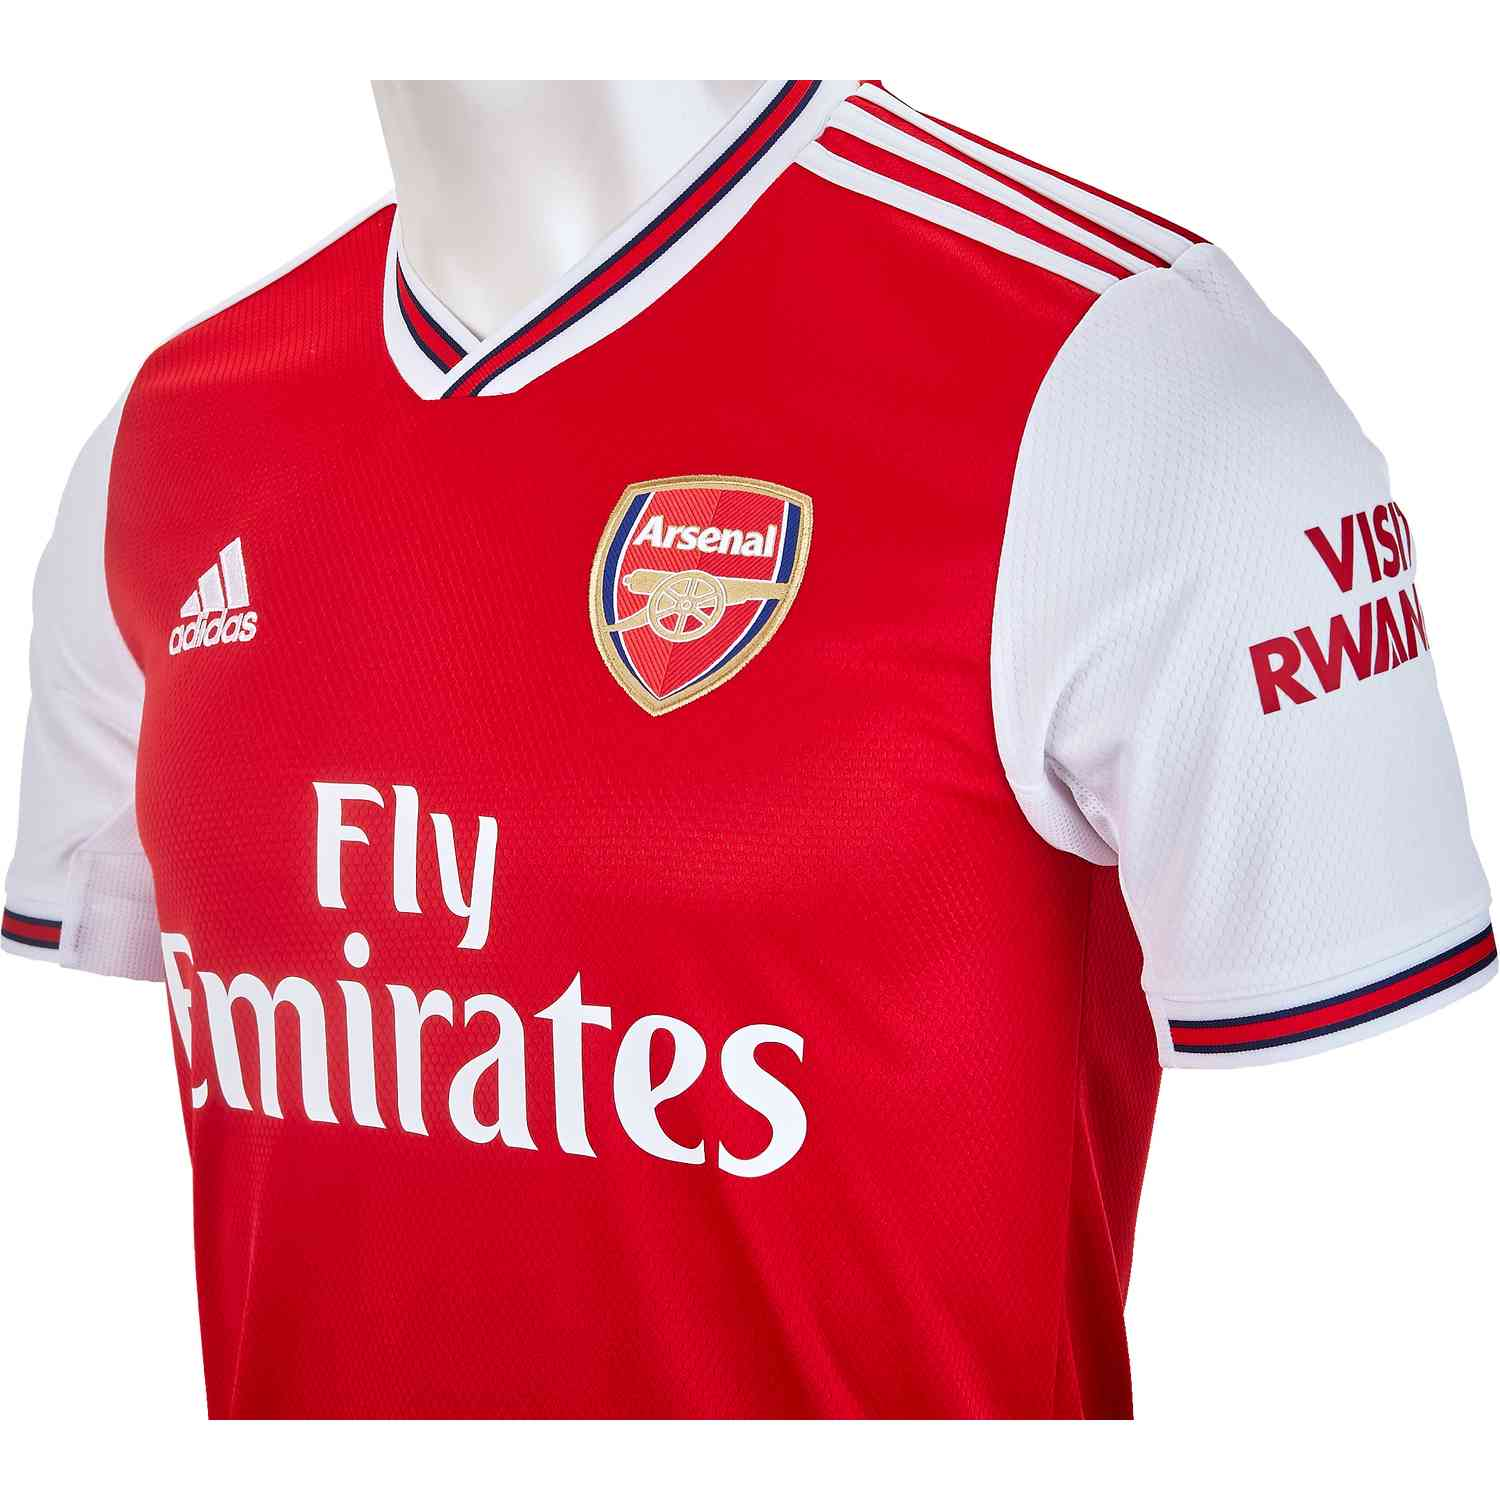 low priced 52c39 d55d0 2019/20 adidas Arsenal Home Jersey - Soccer Master